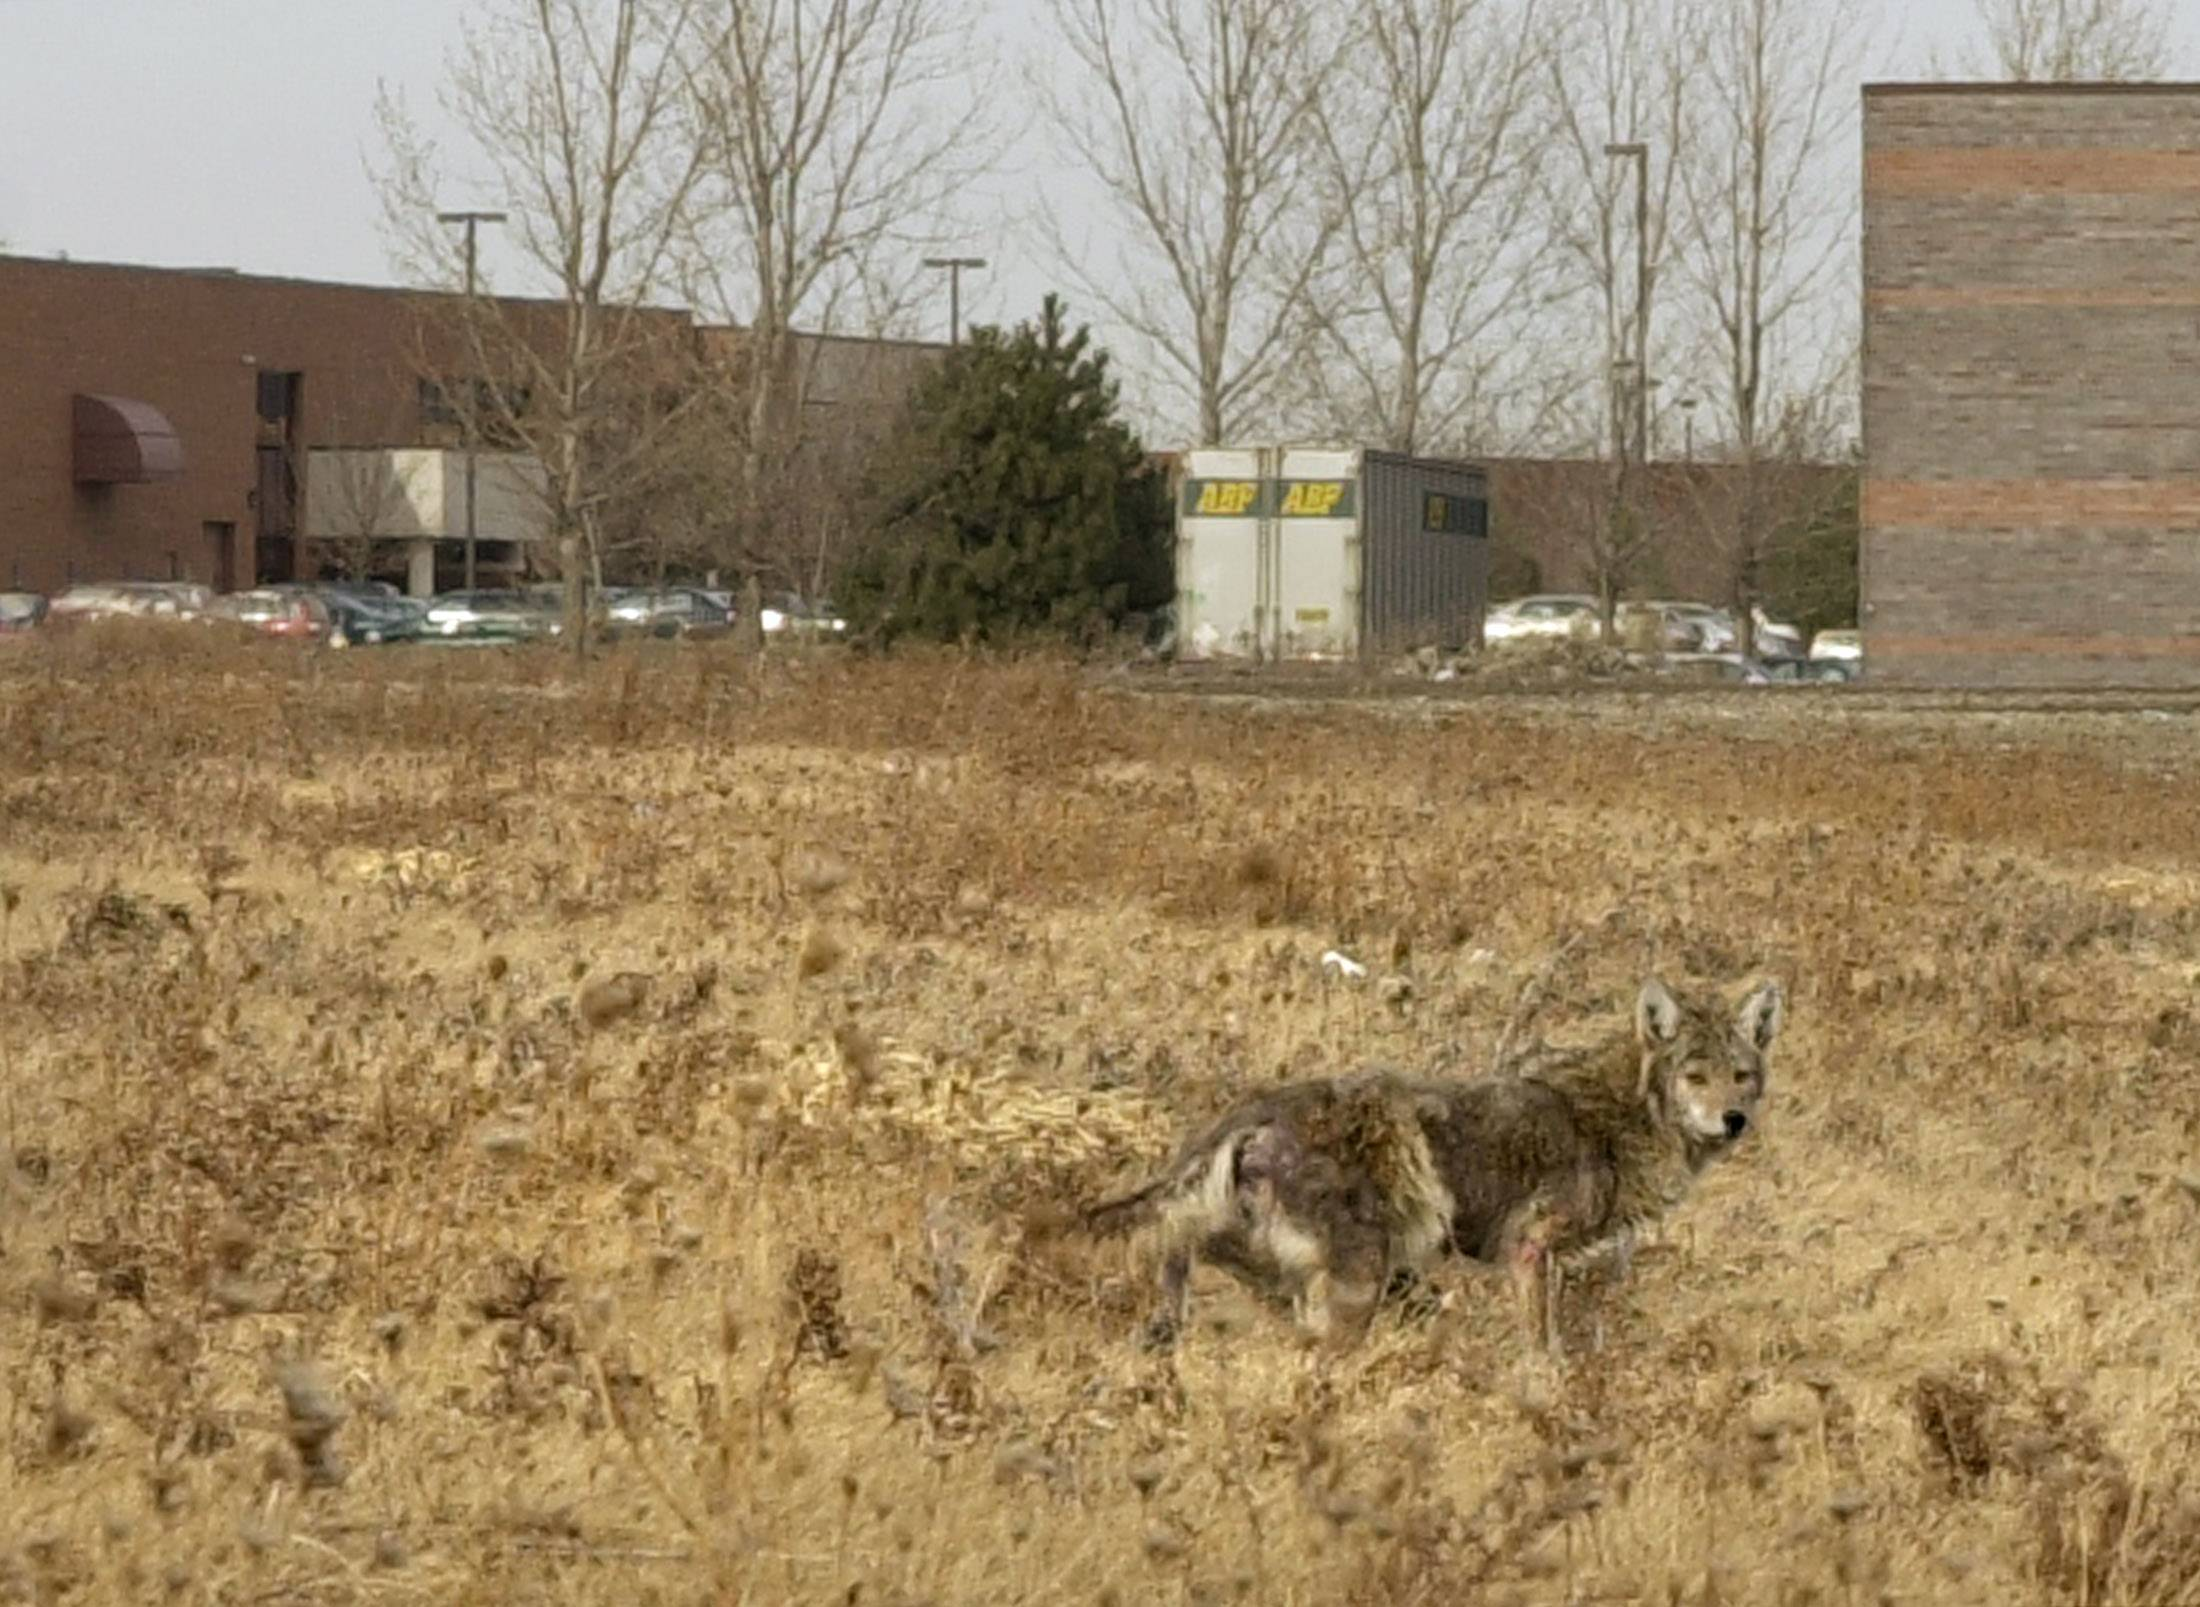 Officials in an Indianapolis suburb say they might hire trappers to deal with a surge in complaints about coyotes in the community.